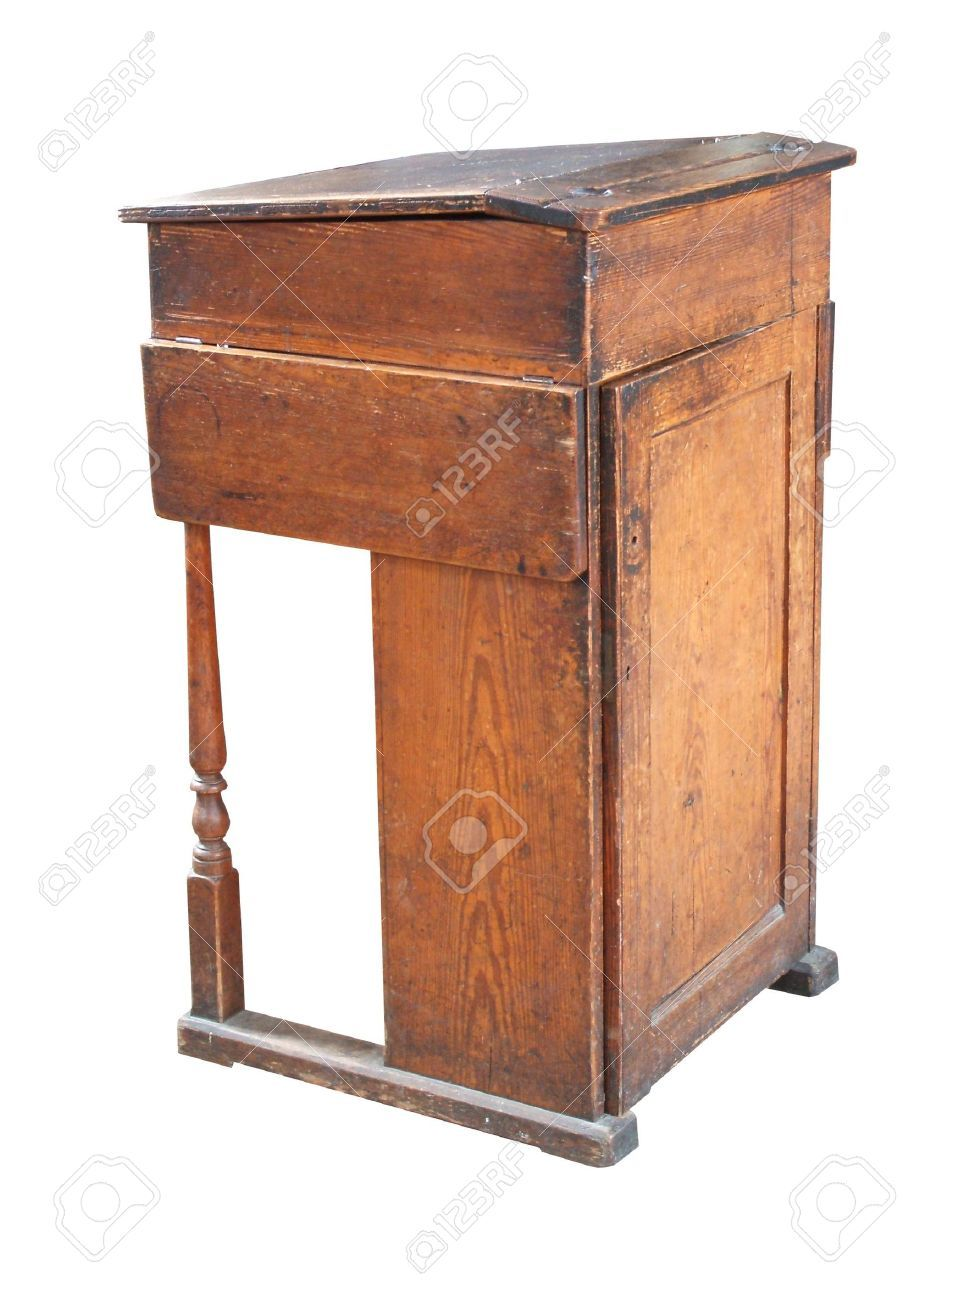 teacher's high wooden desk - Google Search - Teacher's High Wooden Desk -  Google Search Writing - Antique Teachers Desk Antique Furniture